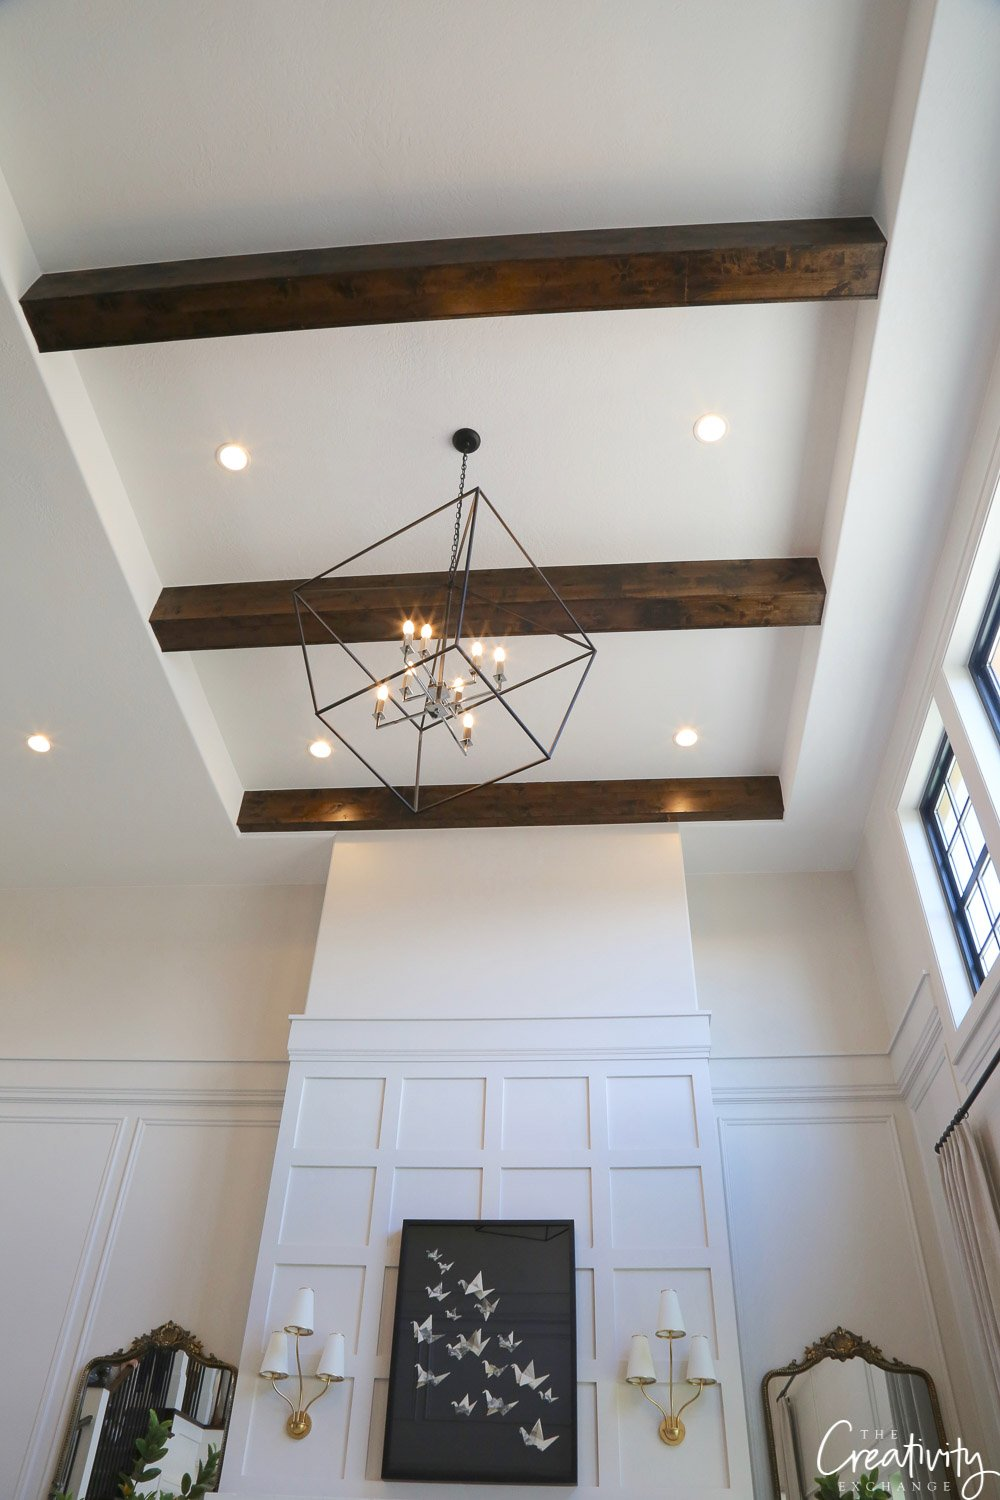 Tall open living ceilings with beams.